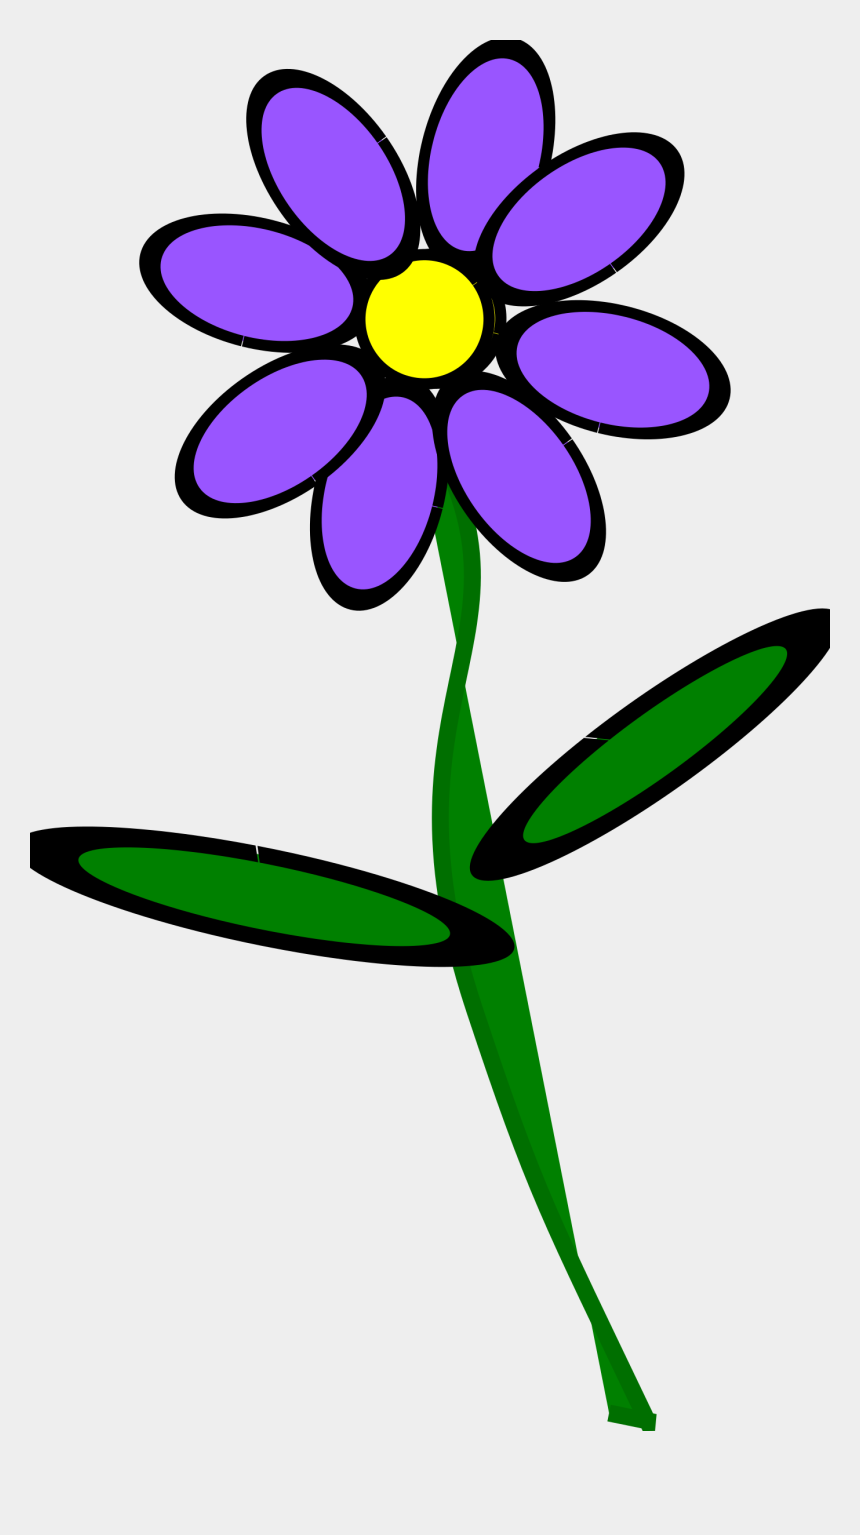 flower stem clipart, Cartoons - Purple Flowers Png - Violet Flower With Stem Clipart